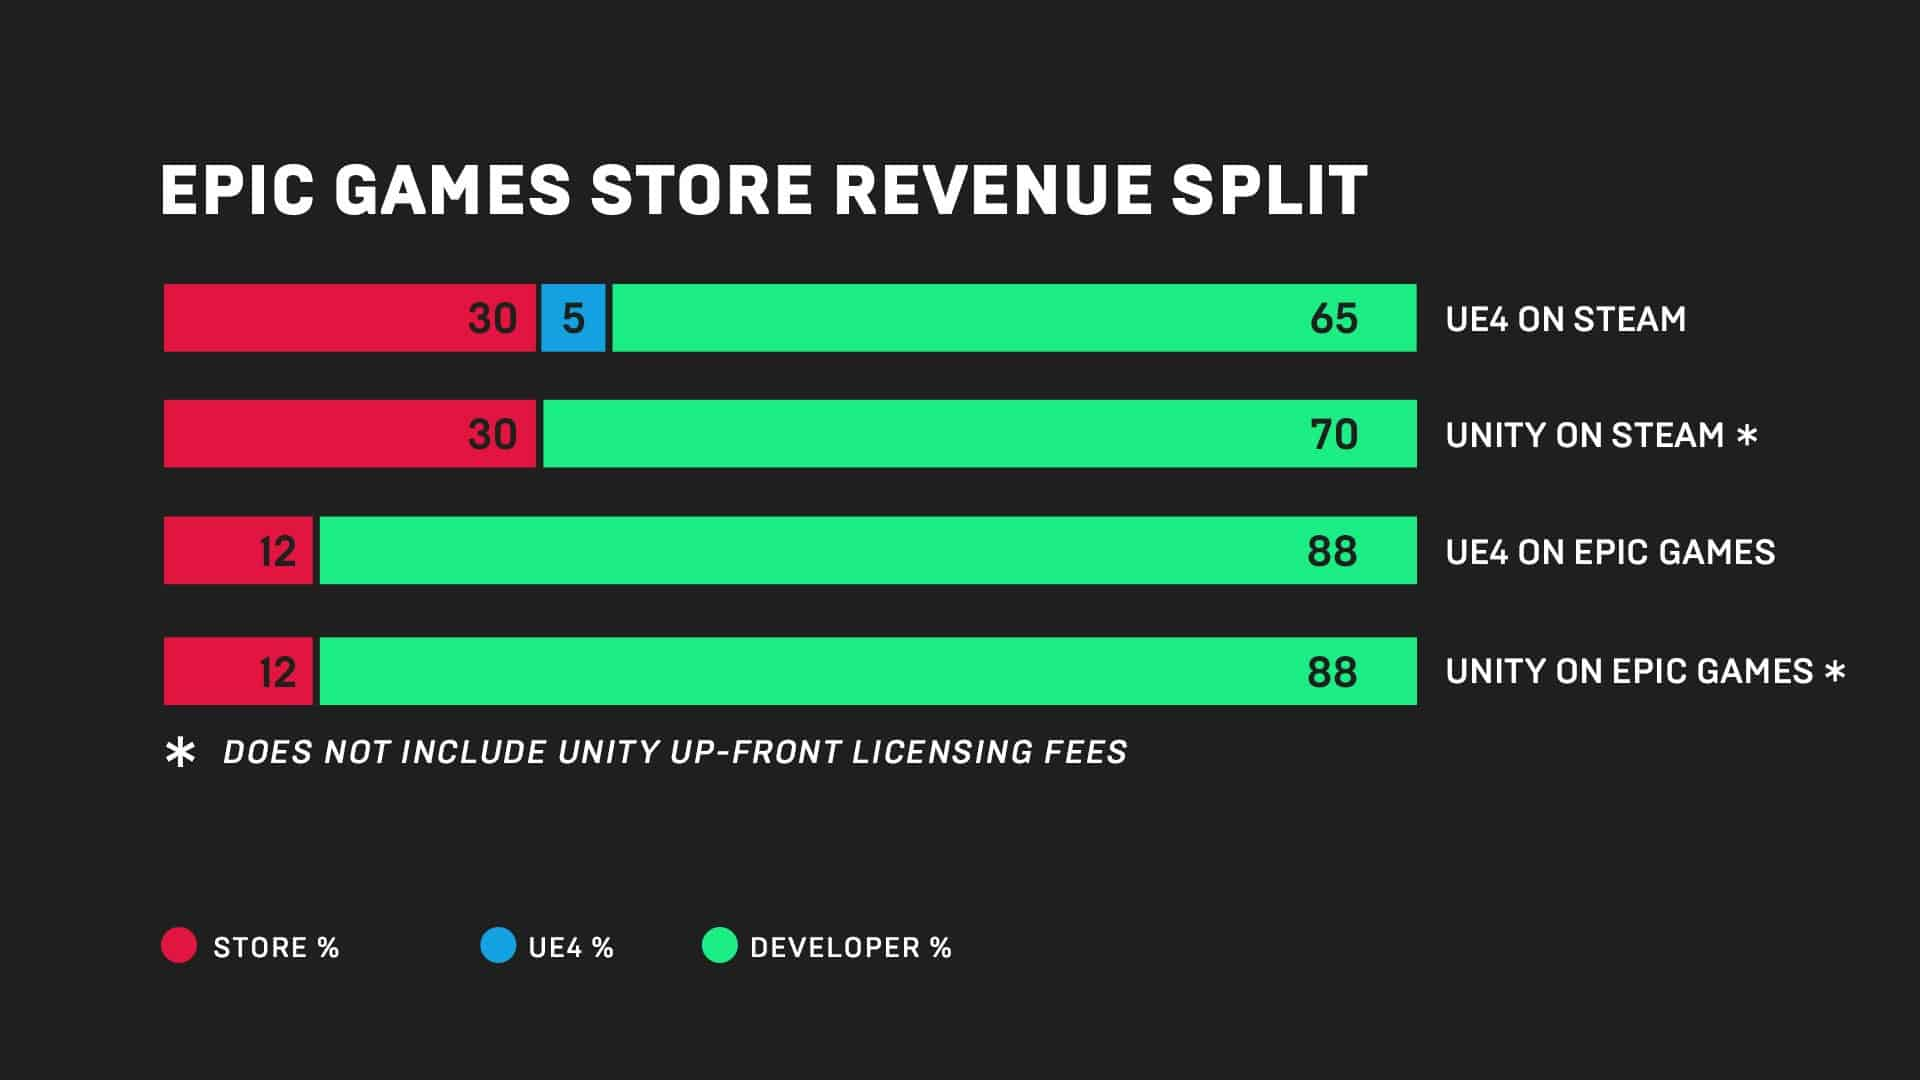 Epic Games revenue split